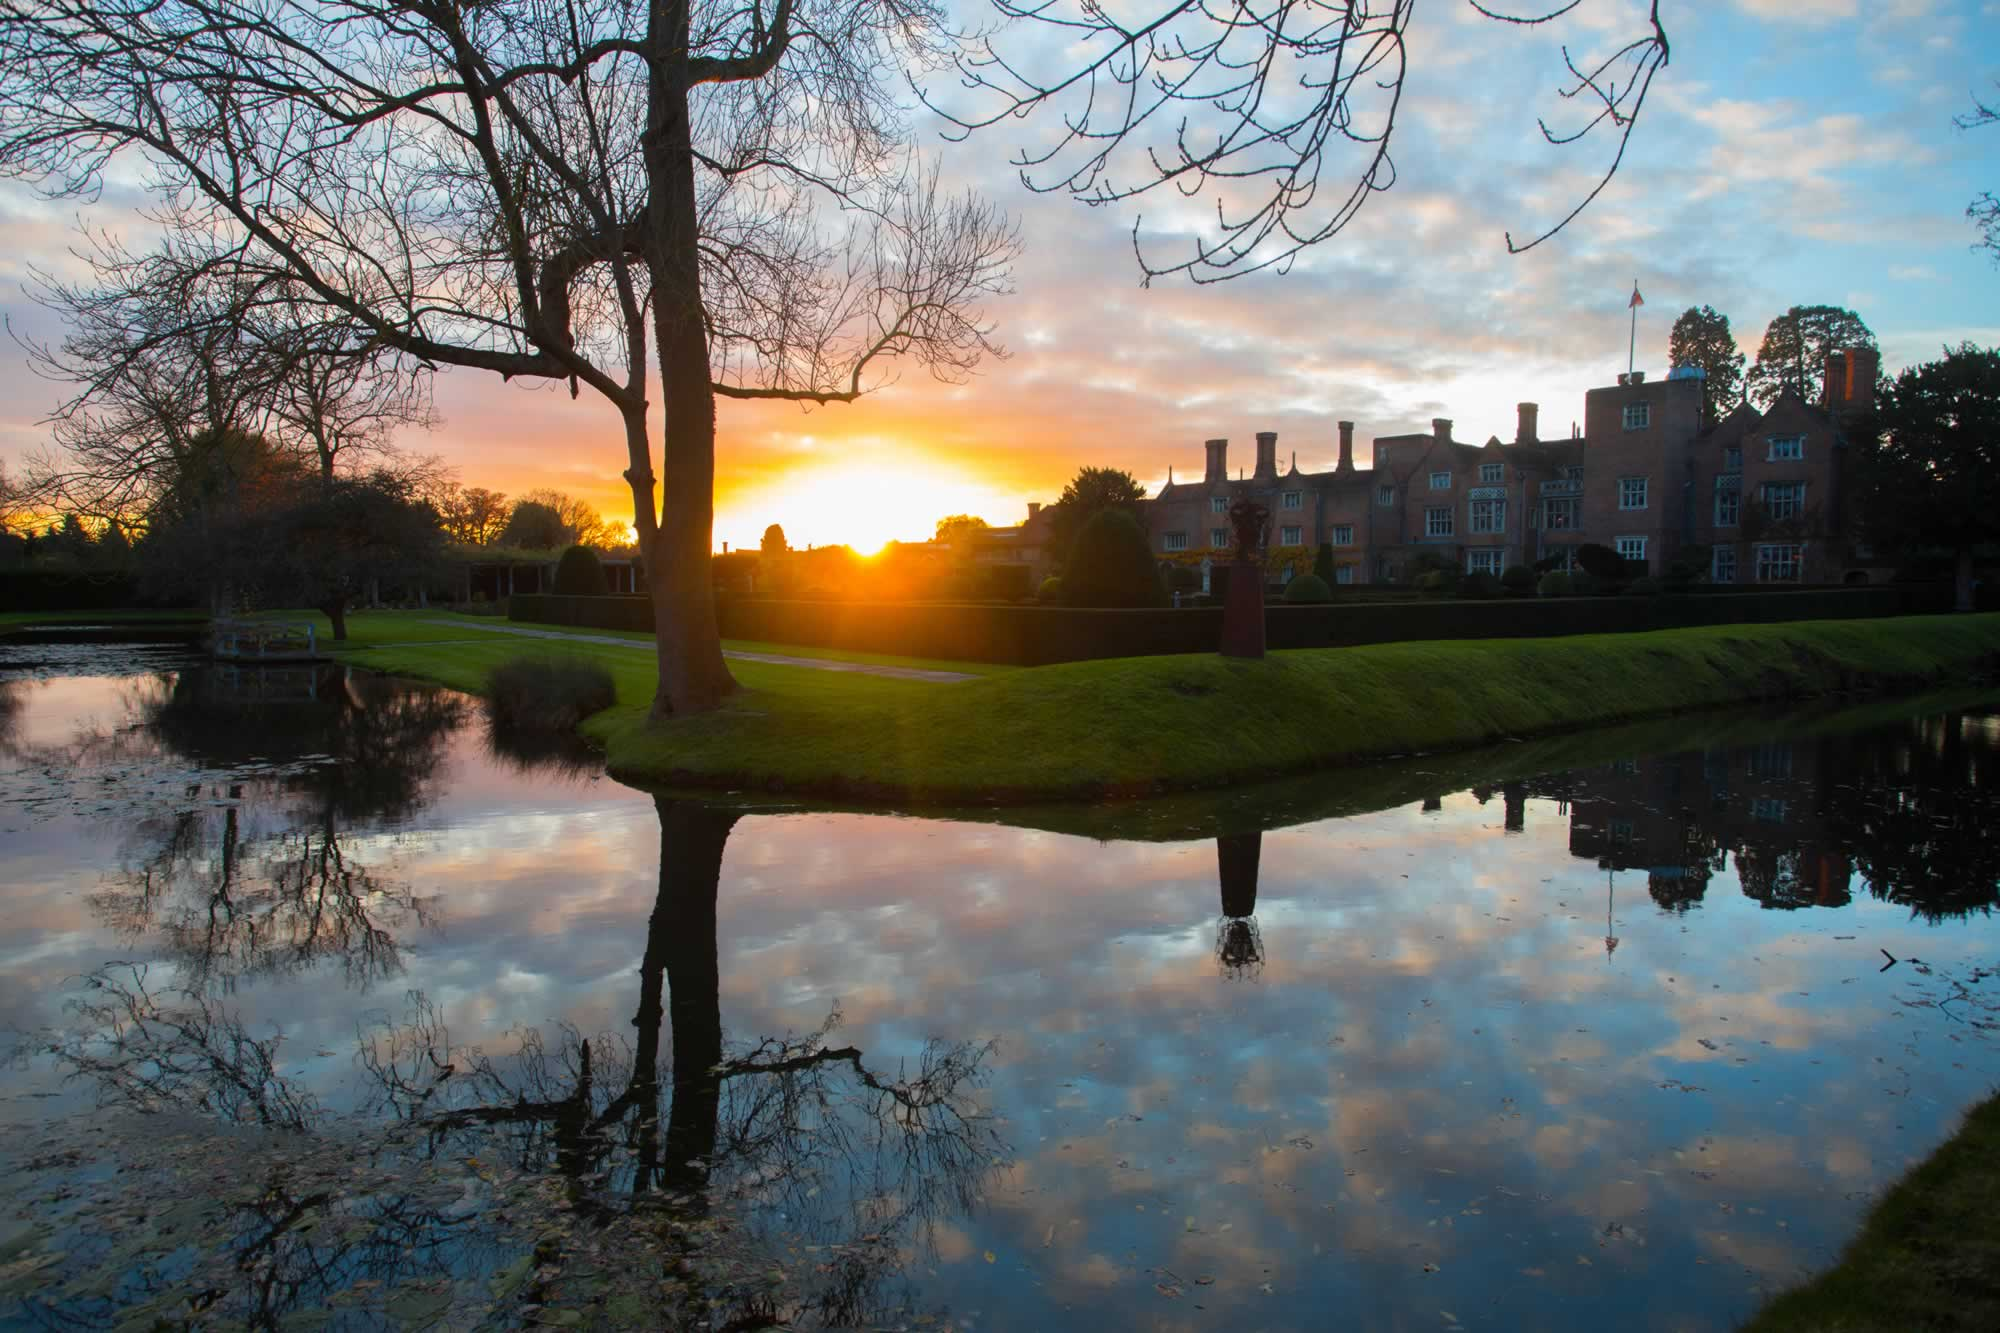 GreatFosters_27